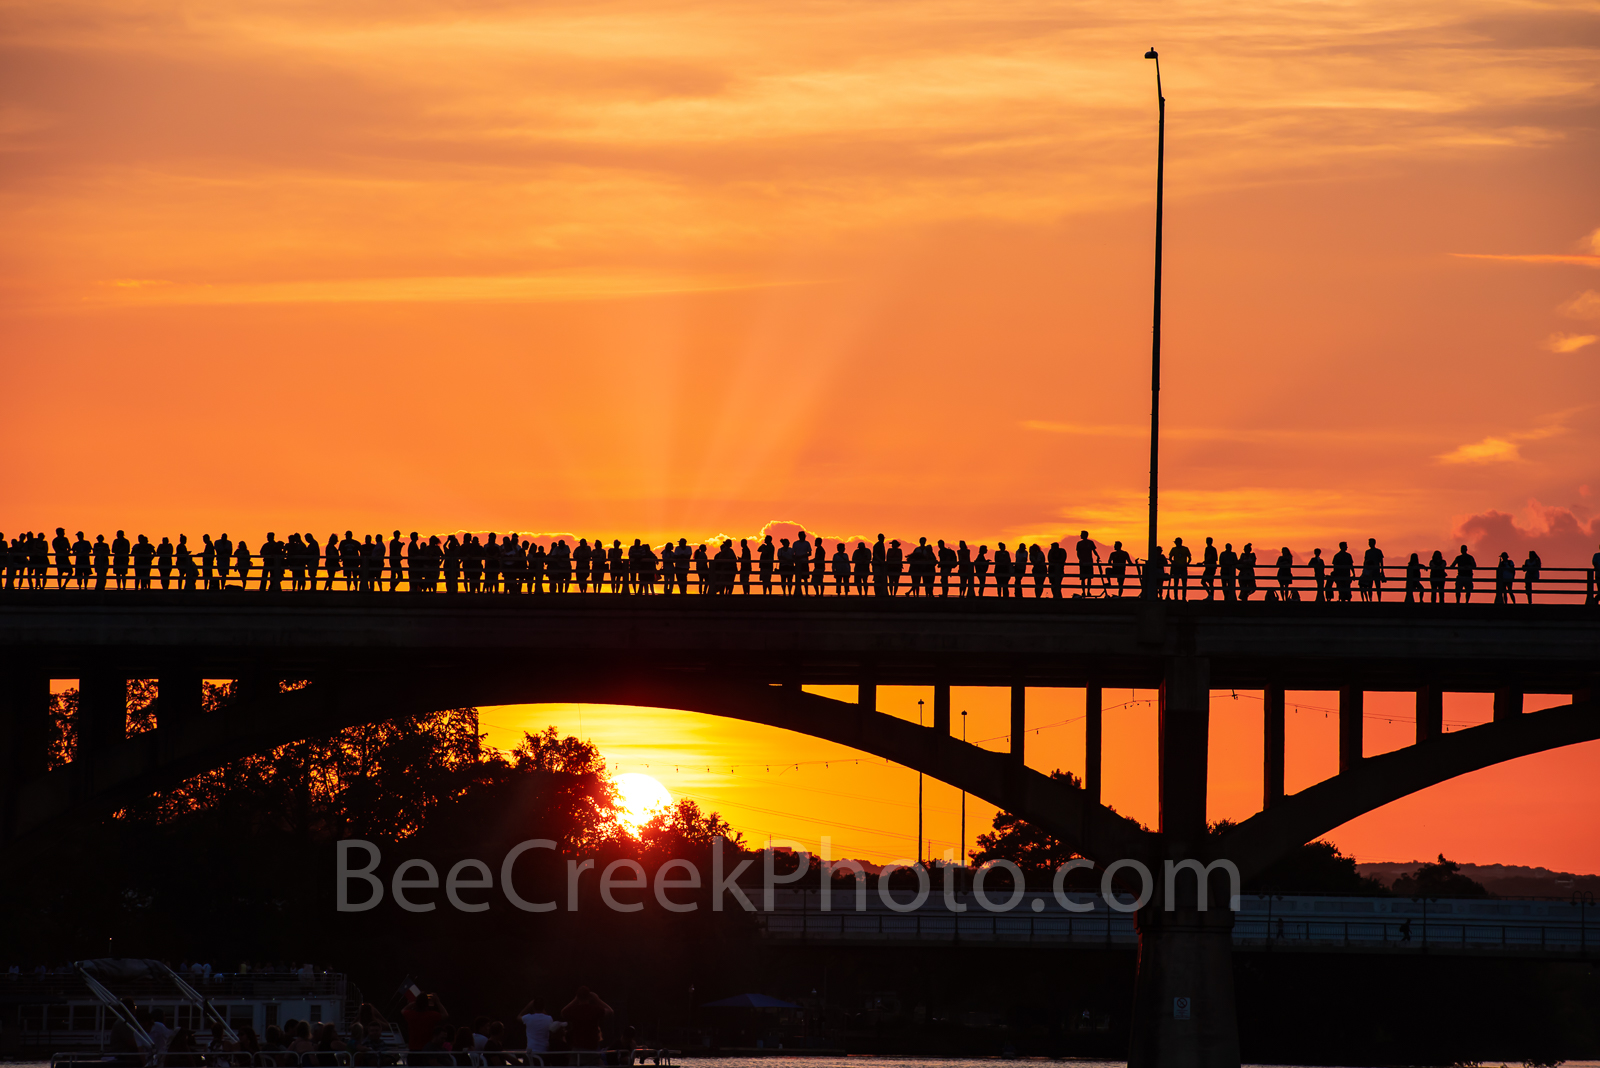 Austin, Texas, Bats, Congress Bridge, Austin Bats, cityscape, city, anticipation, street scene, people, siloutte, bat watch, spectators, orange glow,, photo